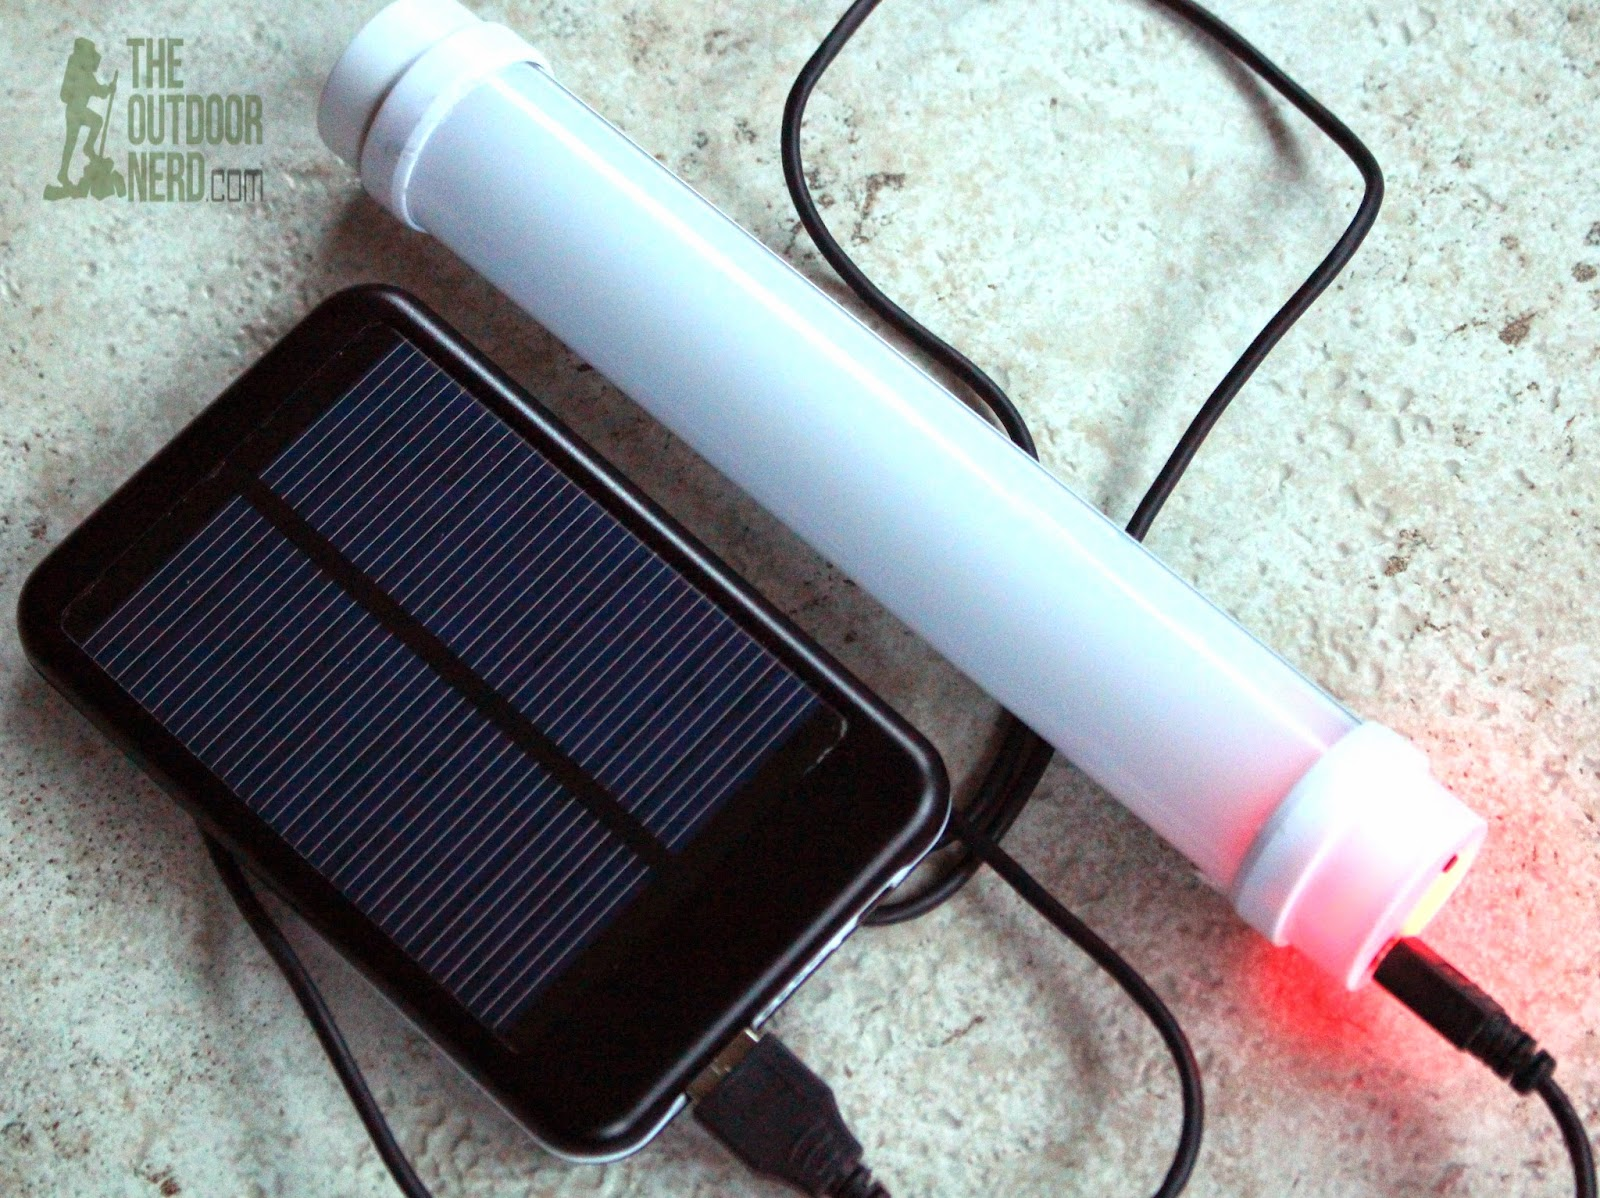 OxyLED Q6 Rechargeable USB Lantern - Product Link